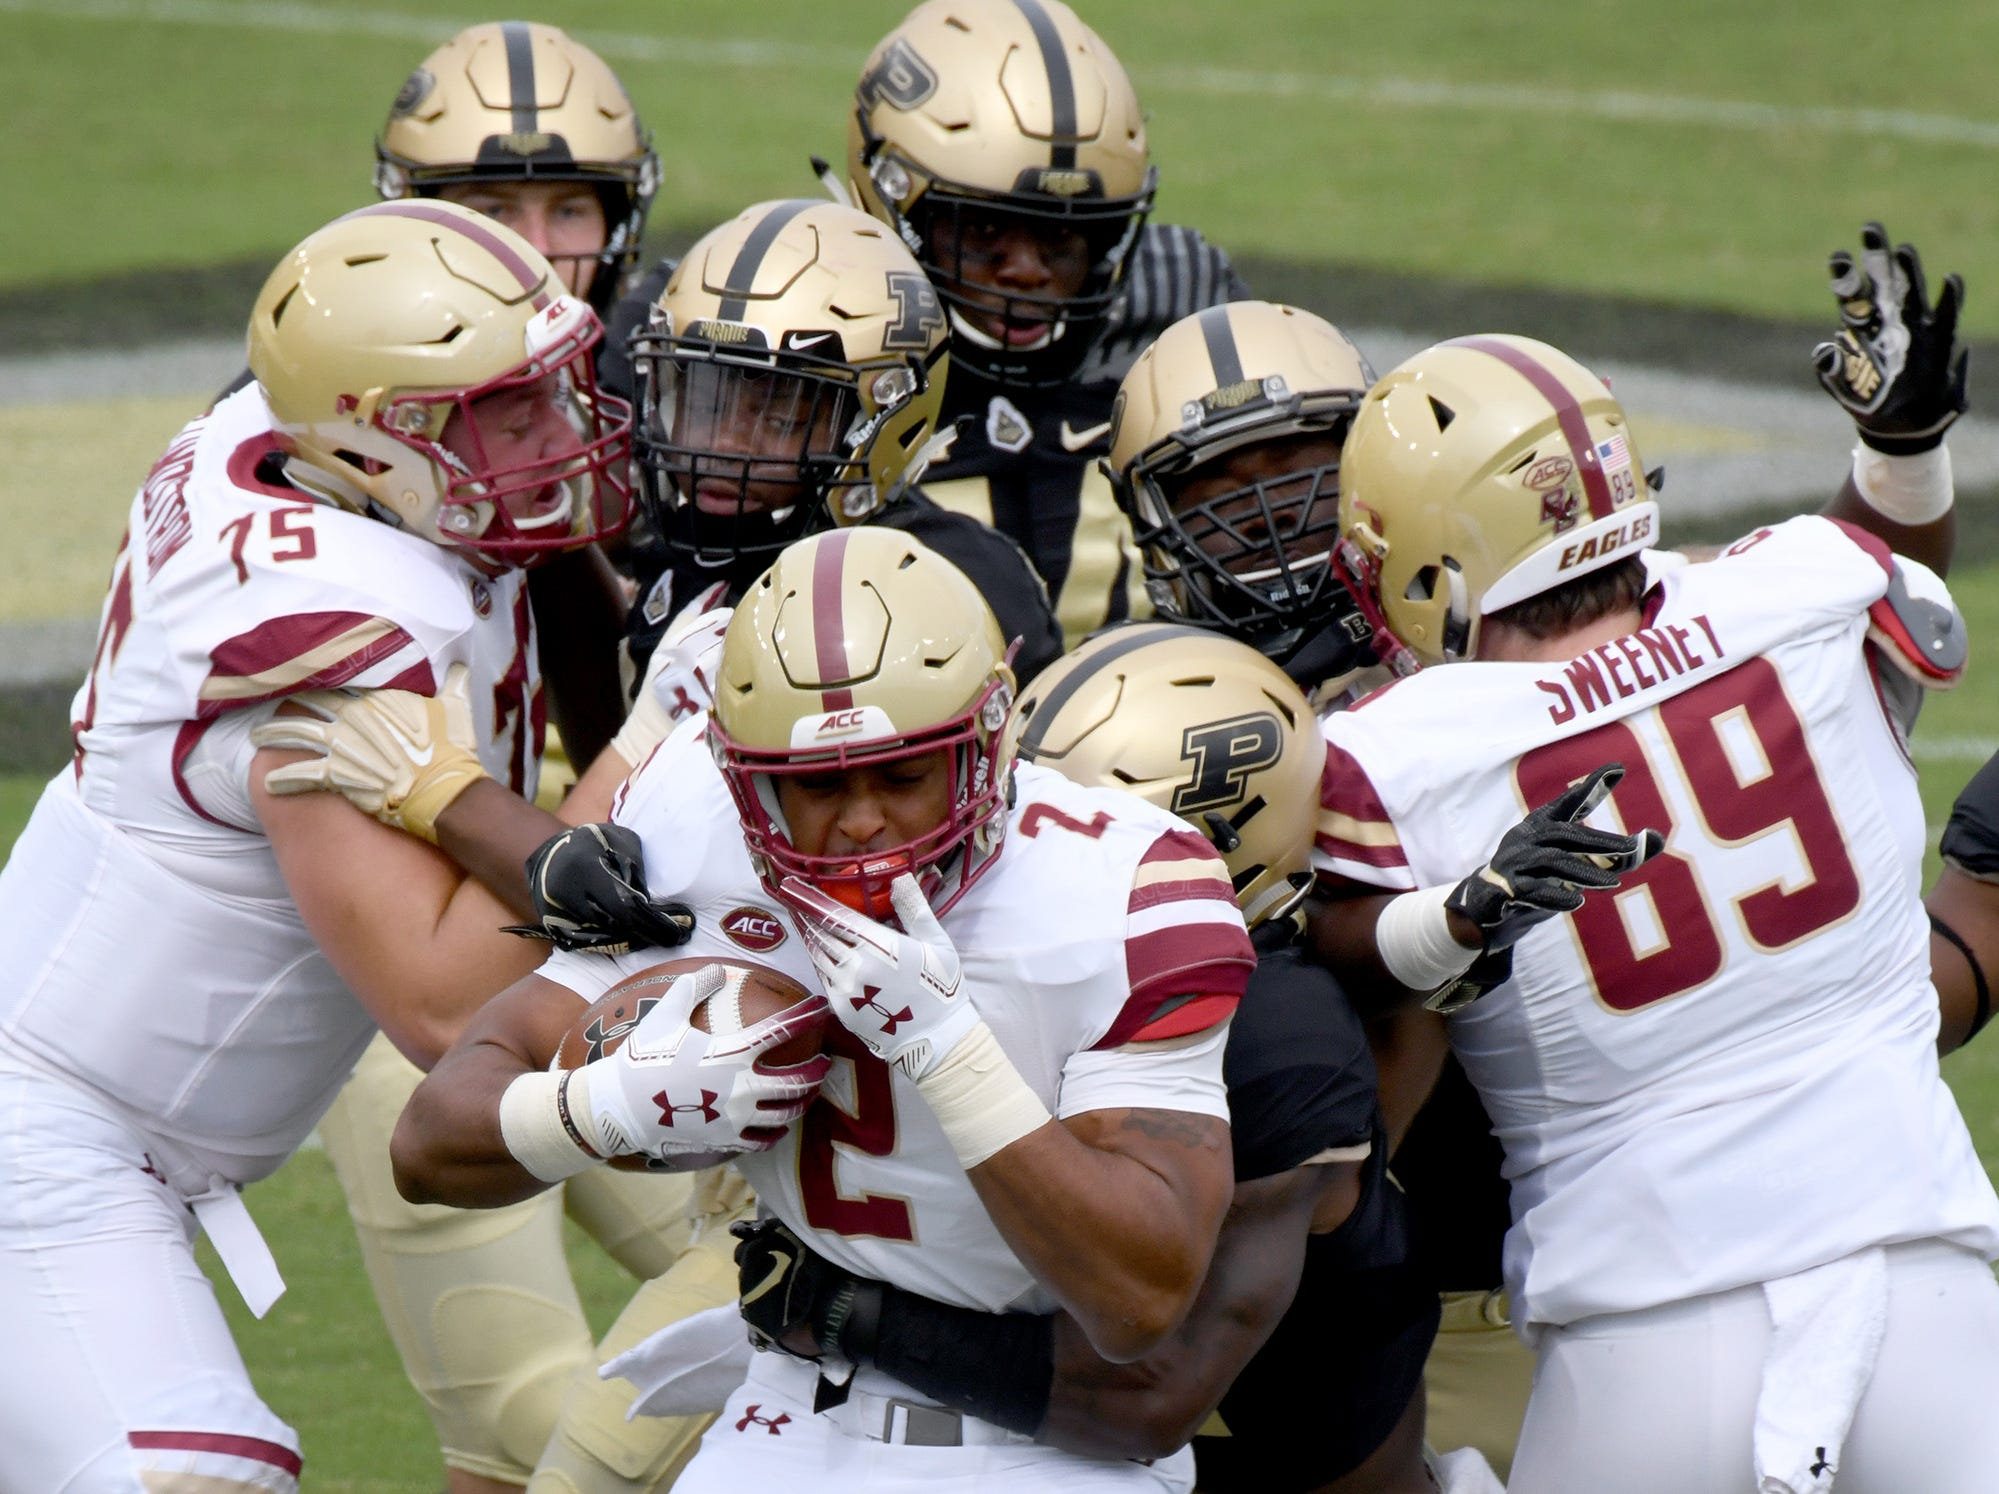 Boston College running back AJ Dillion is stacked up at the line of scrimmage in Purdue's 30-13 win in West Lafayette on Saturday September 22, 2018.